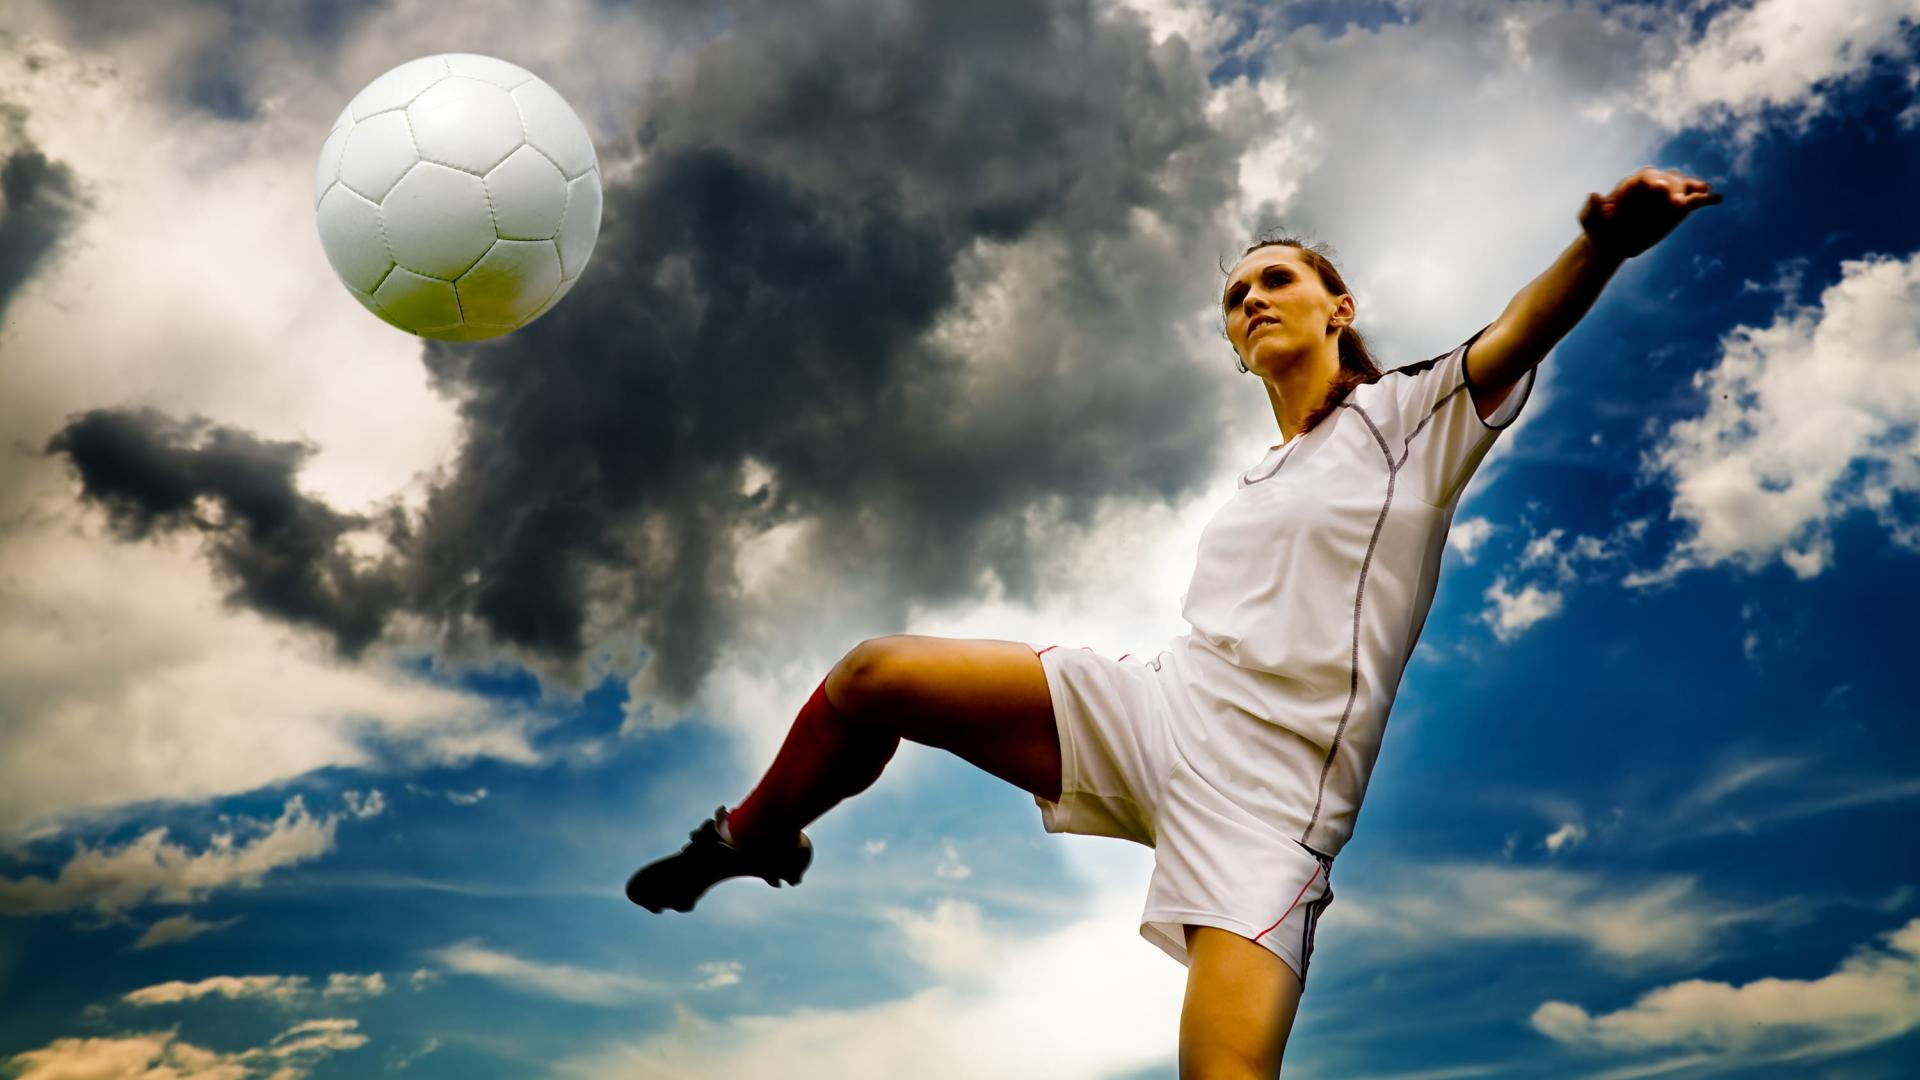 Female soccer player volleying a ball, showing great touch